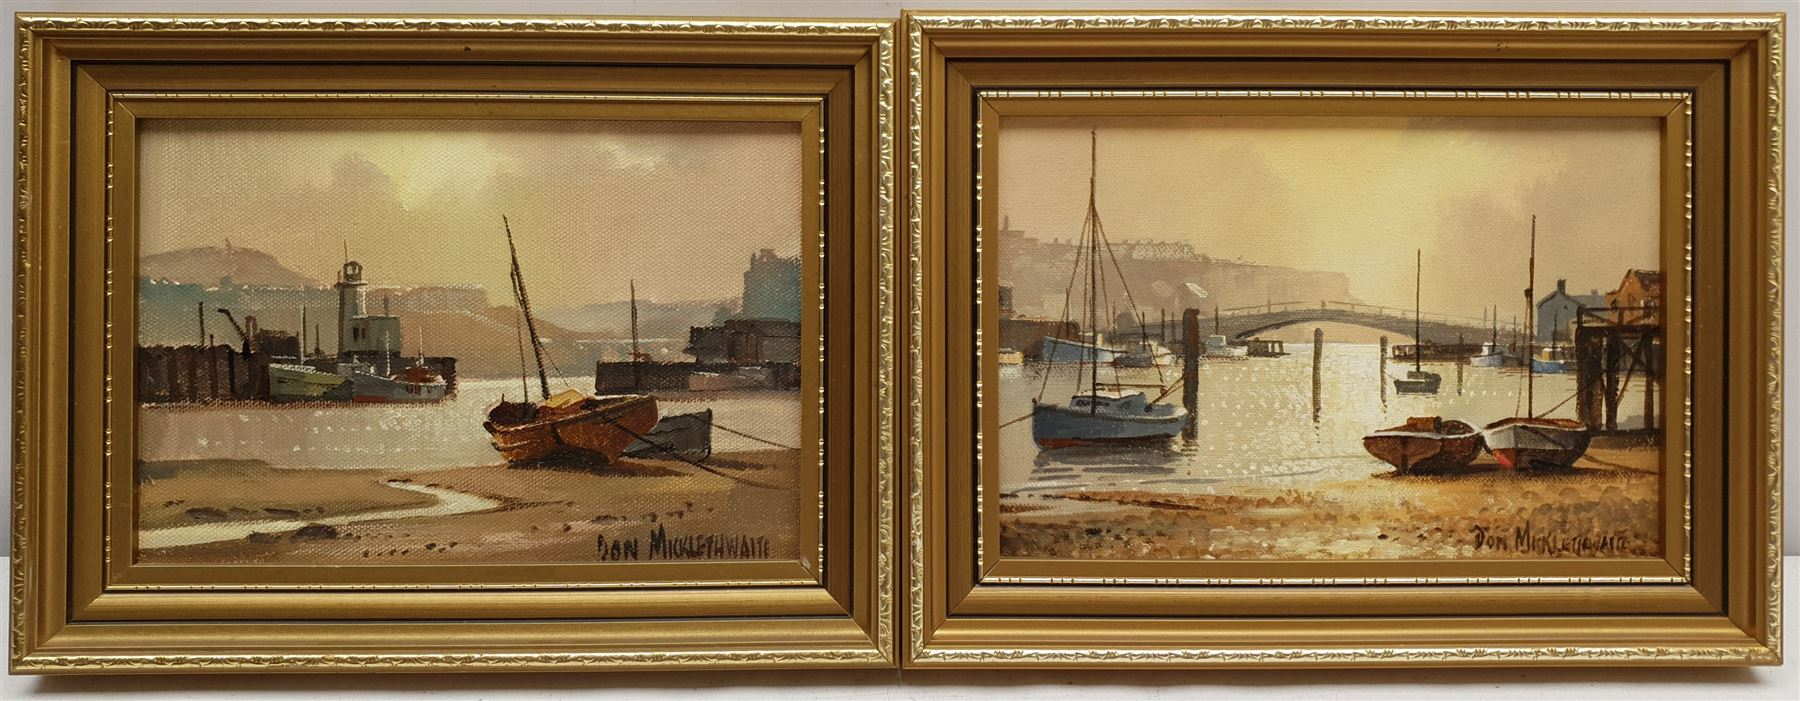 Don Micklethwaite (British 1936-): Scarborough and Whitby Harbours - Image 2 of 2